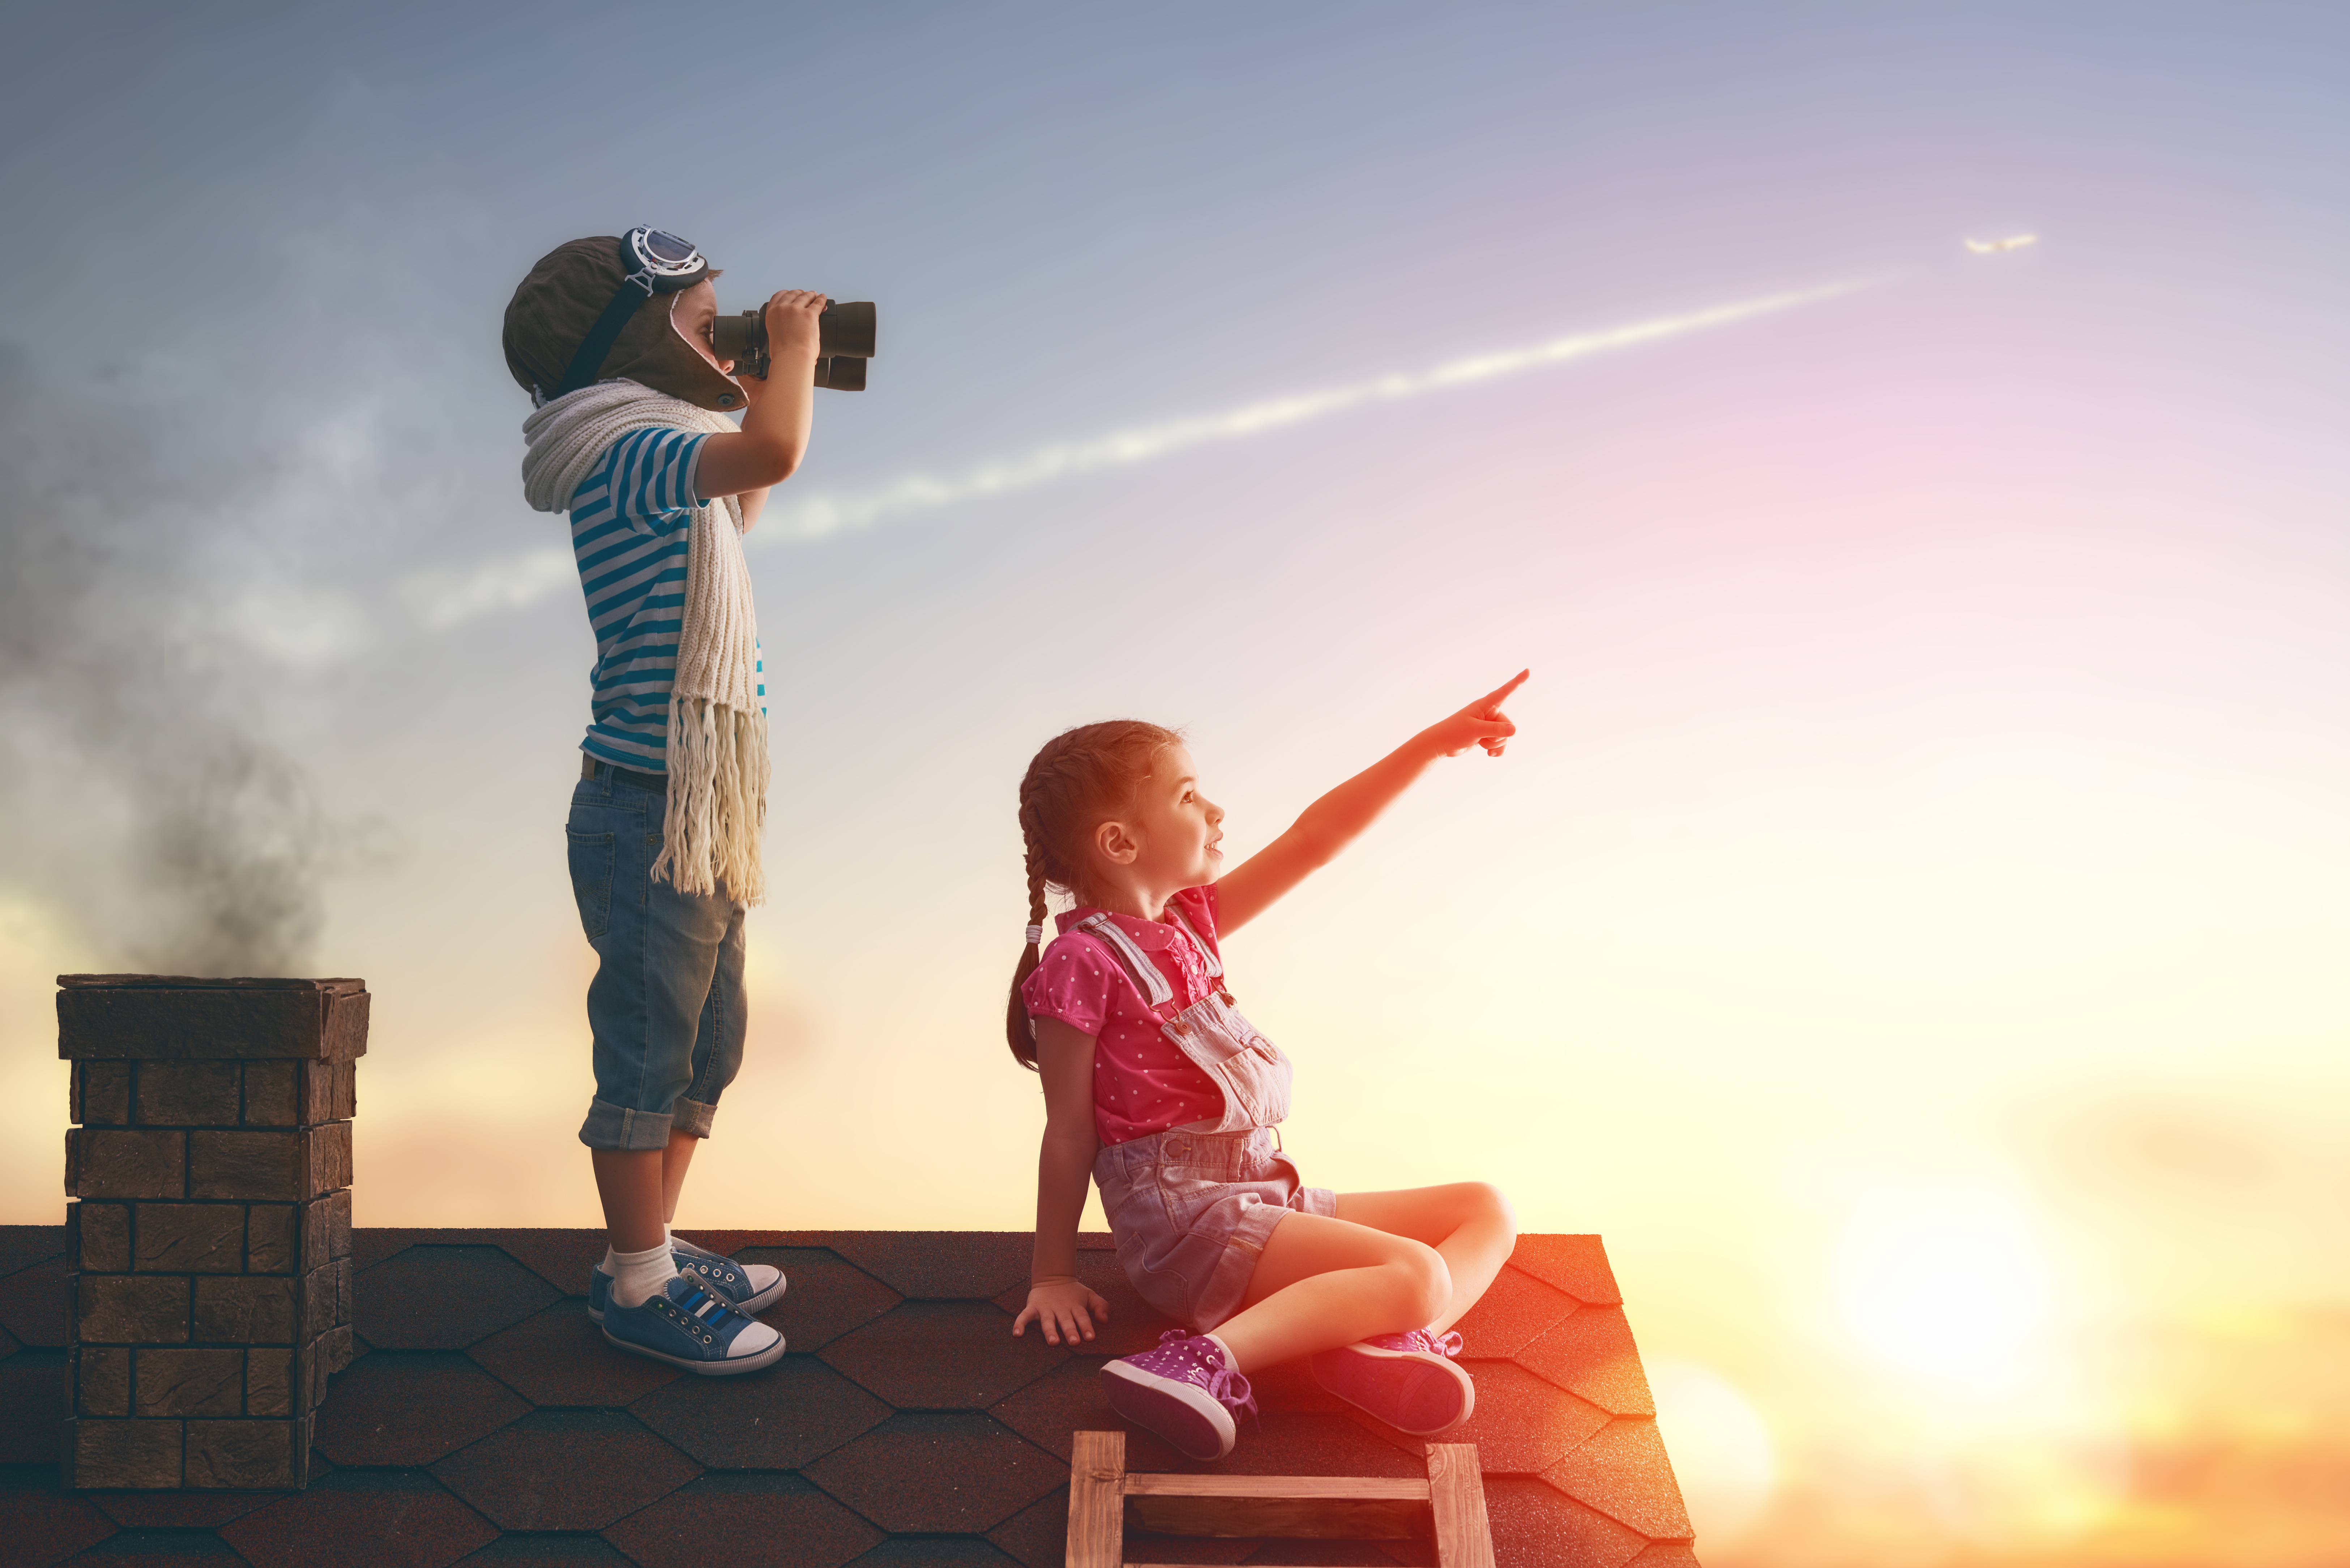 Little Childrens On Roof Watching Sky Hd Photography 4k